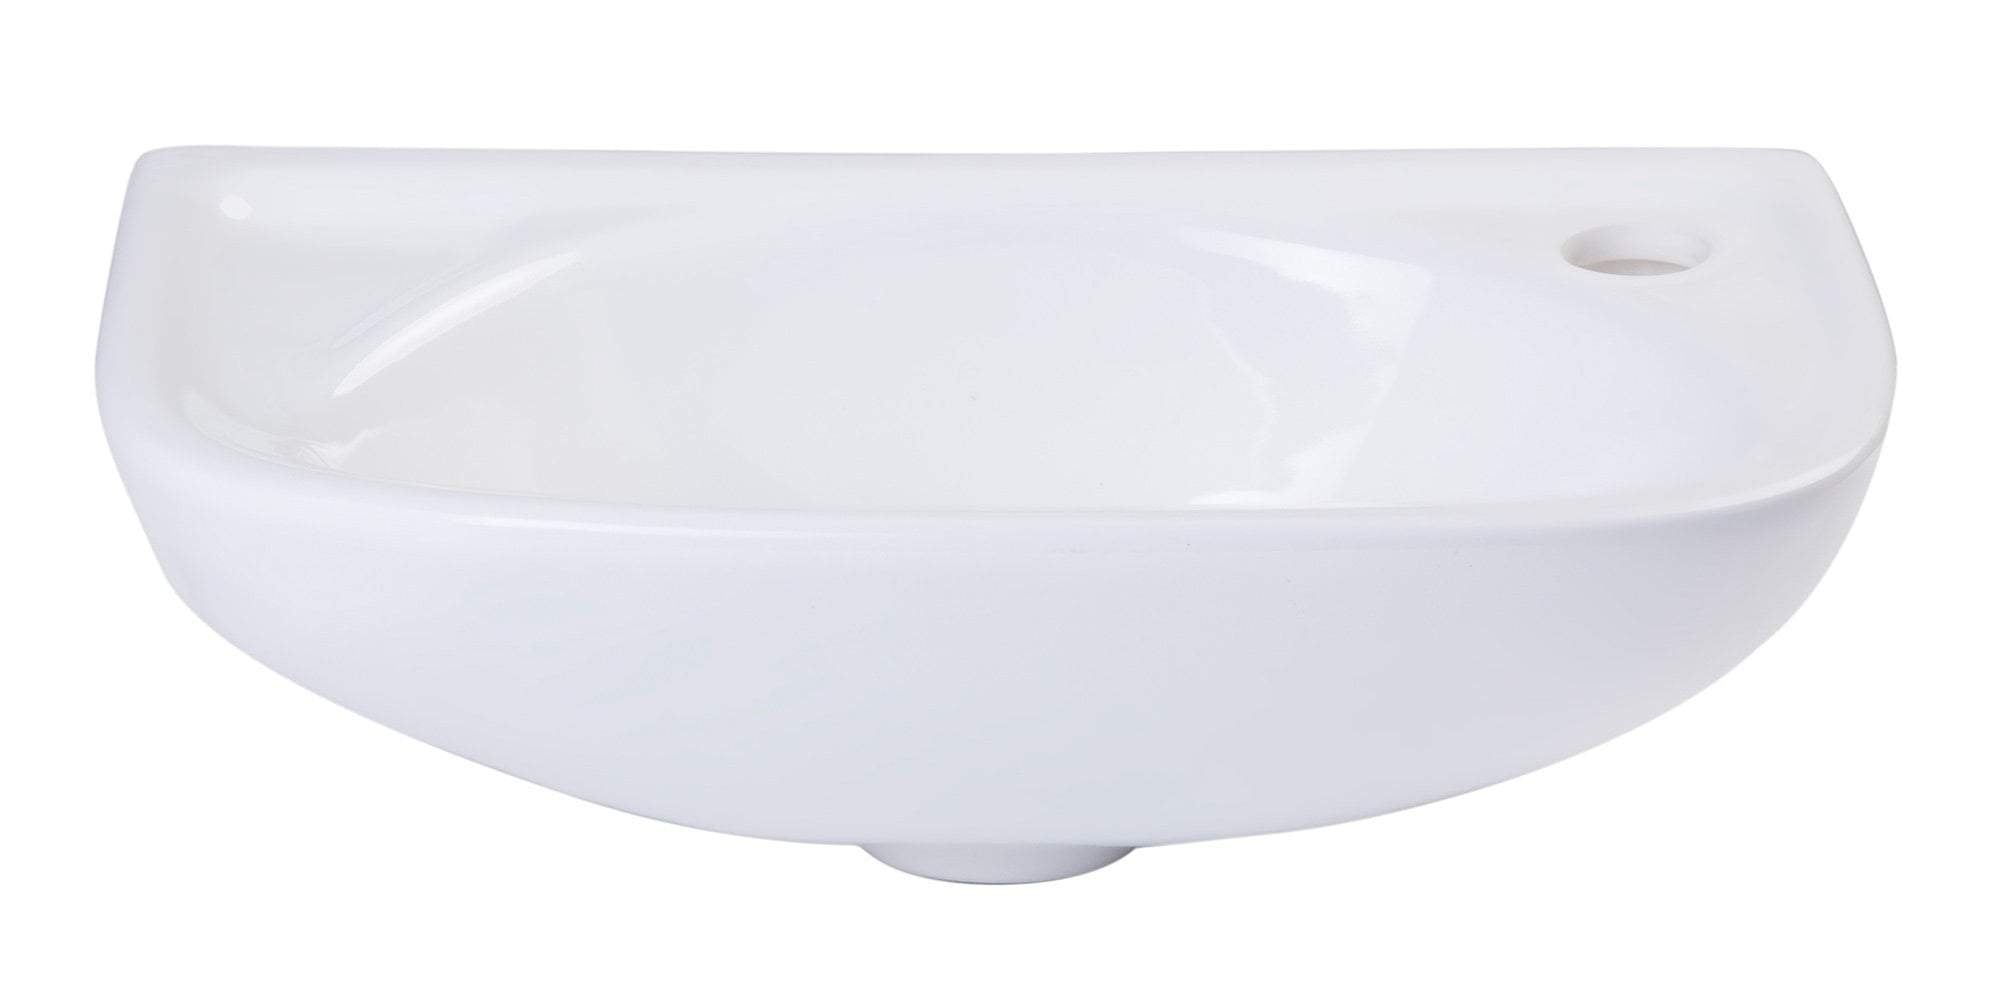 ALFI brand AB102 Small White Wall Mounted Porcelain Bathroom Sink Basin